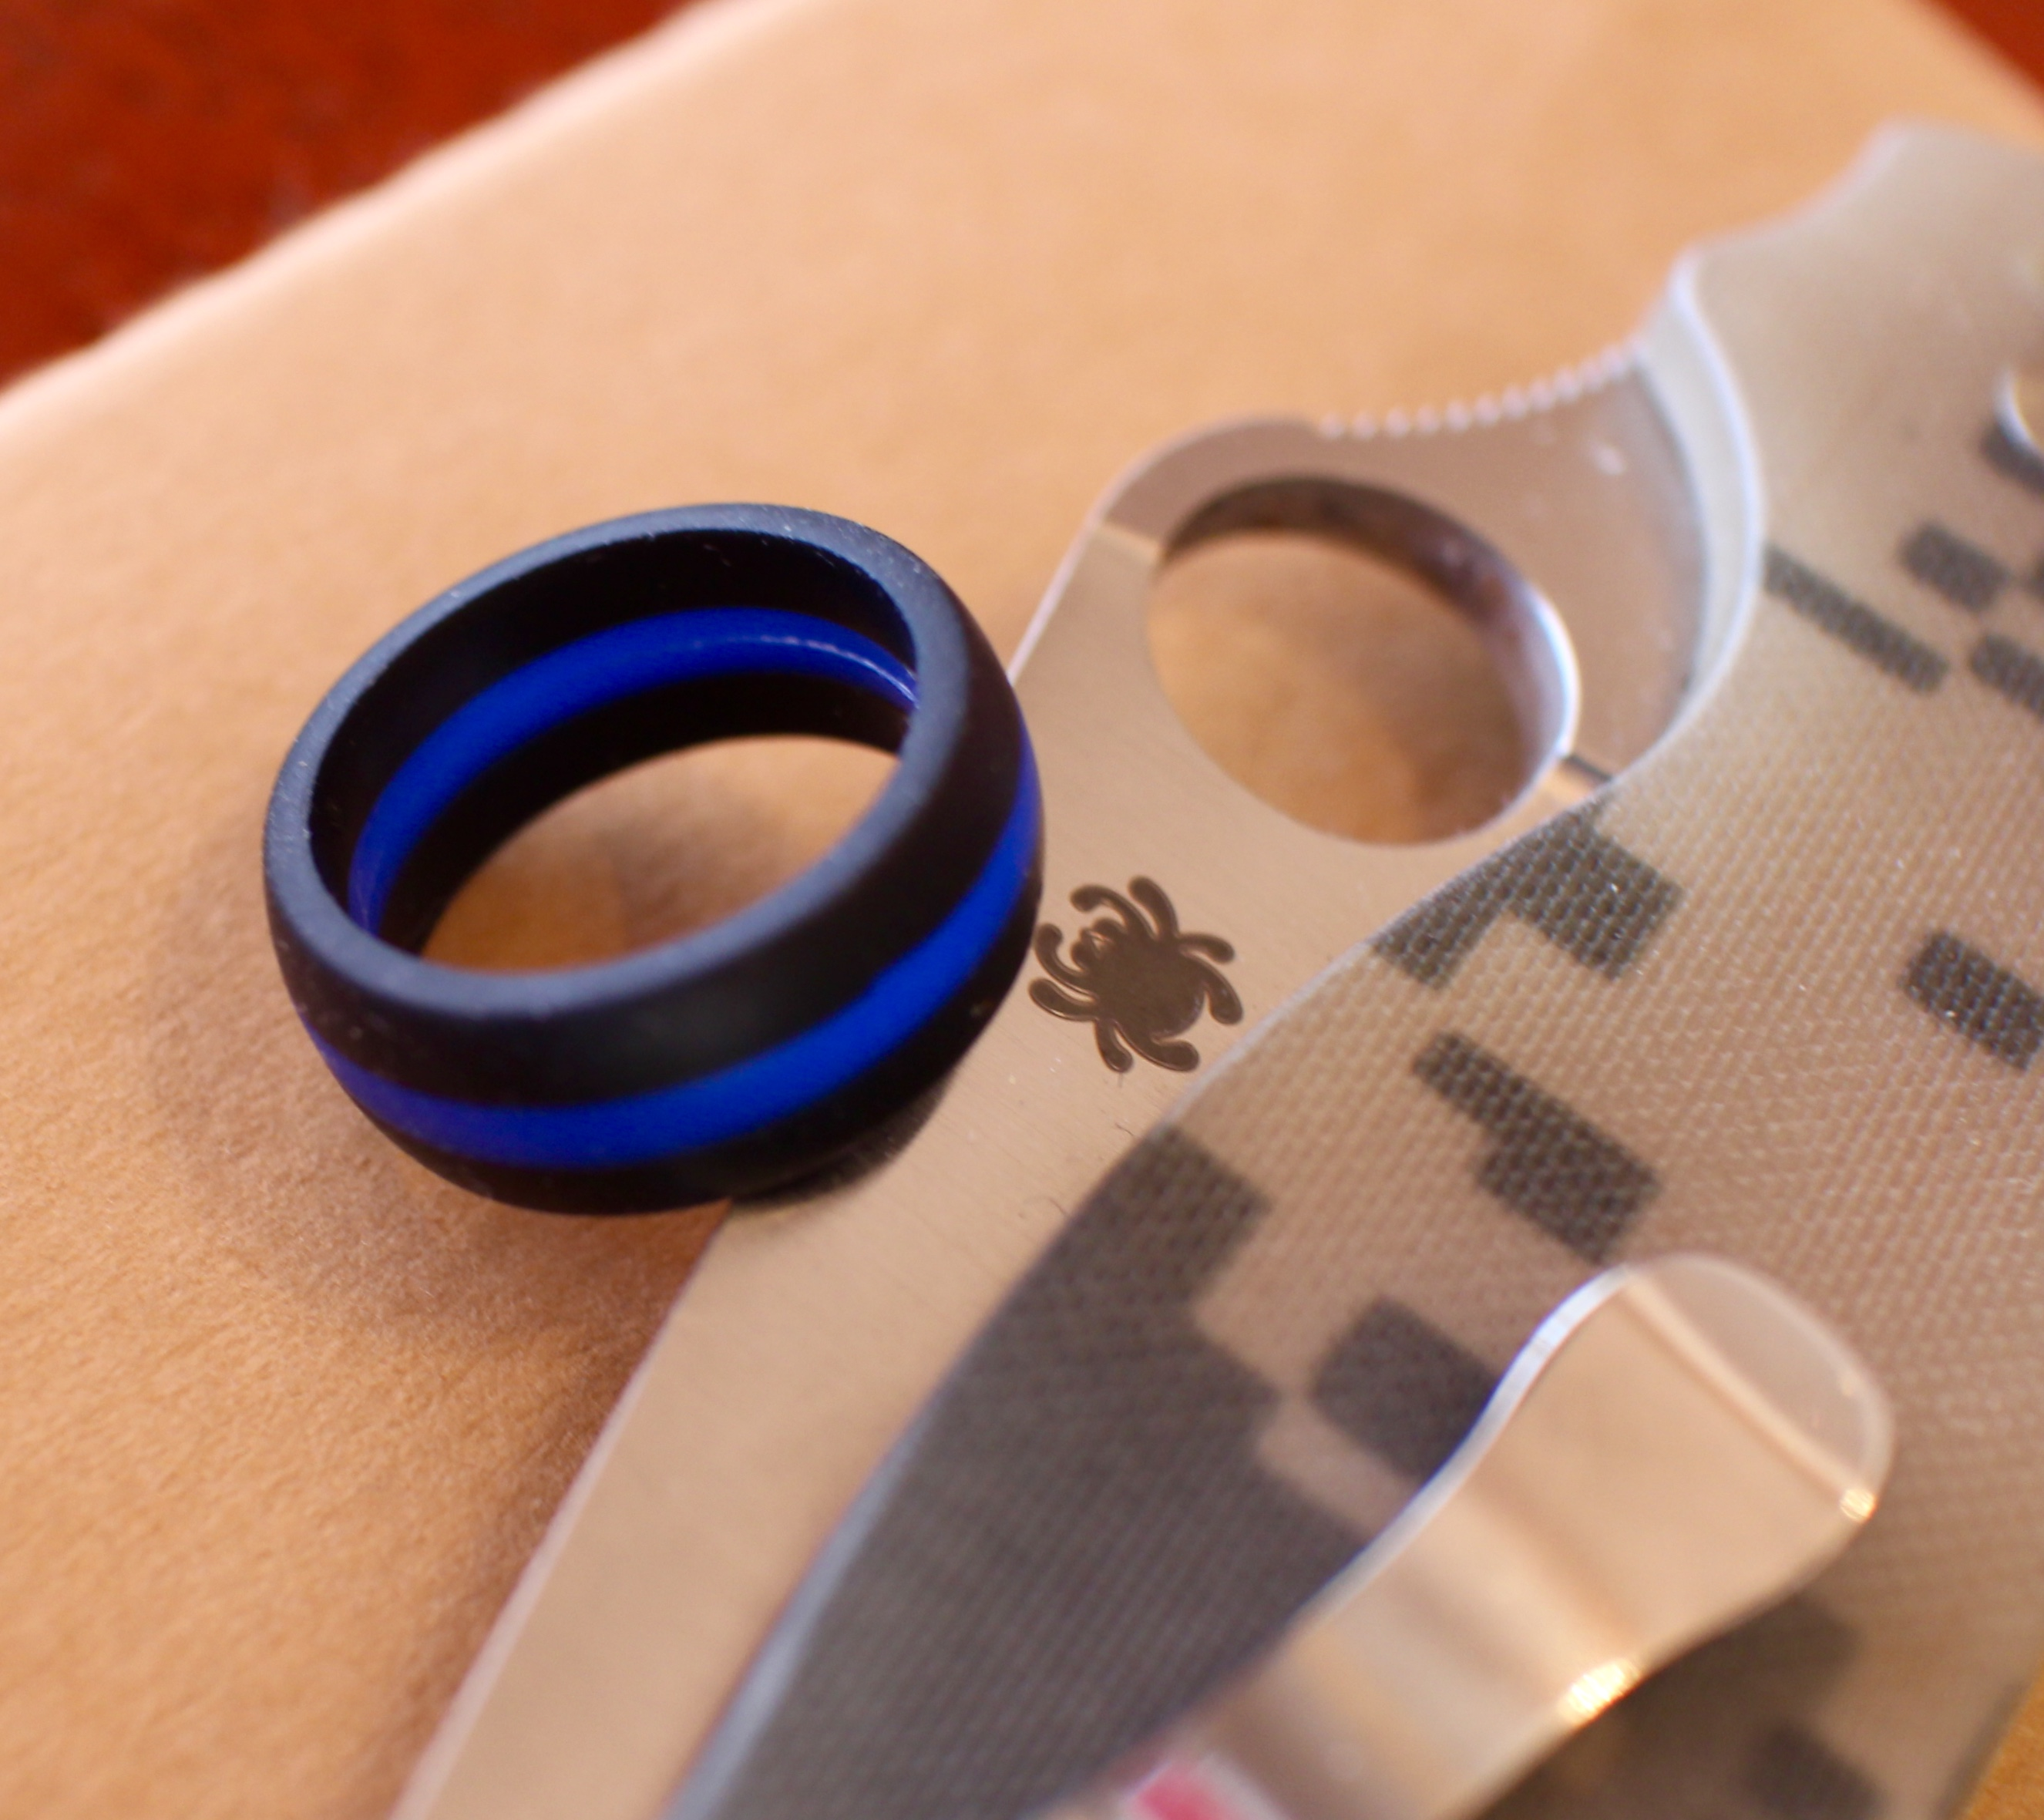 review rings silicon my climbing gym silicone qalo session mid ring tactical img